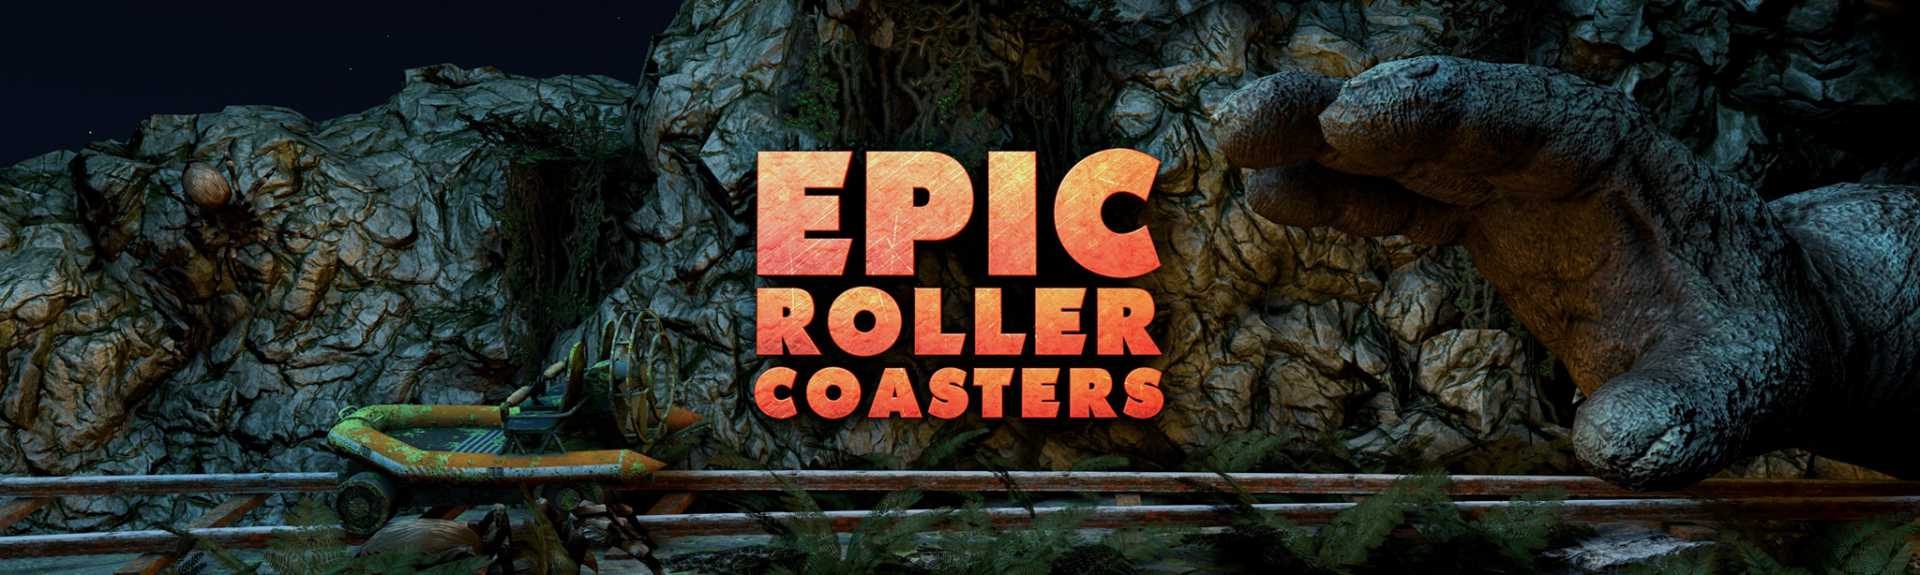 Epic Roller Coasters